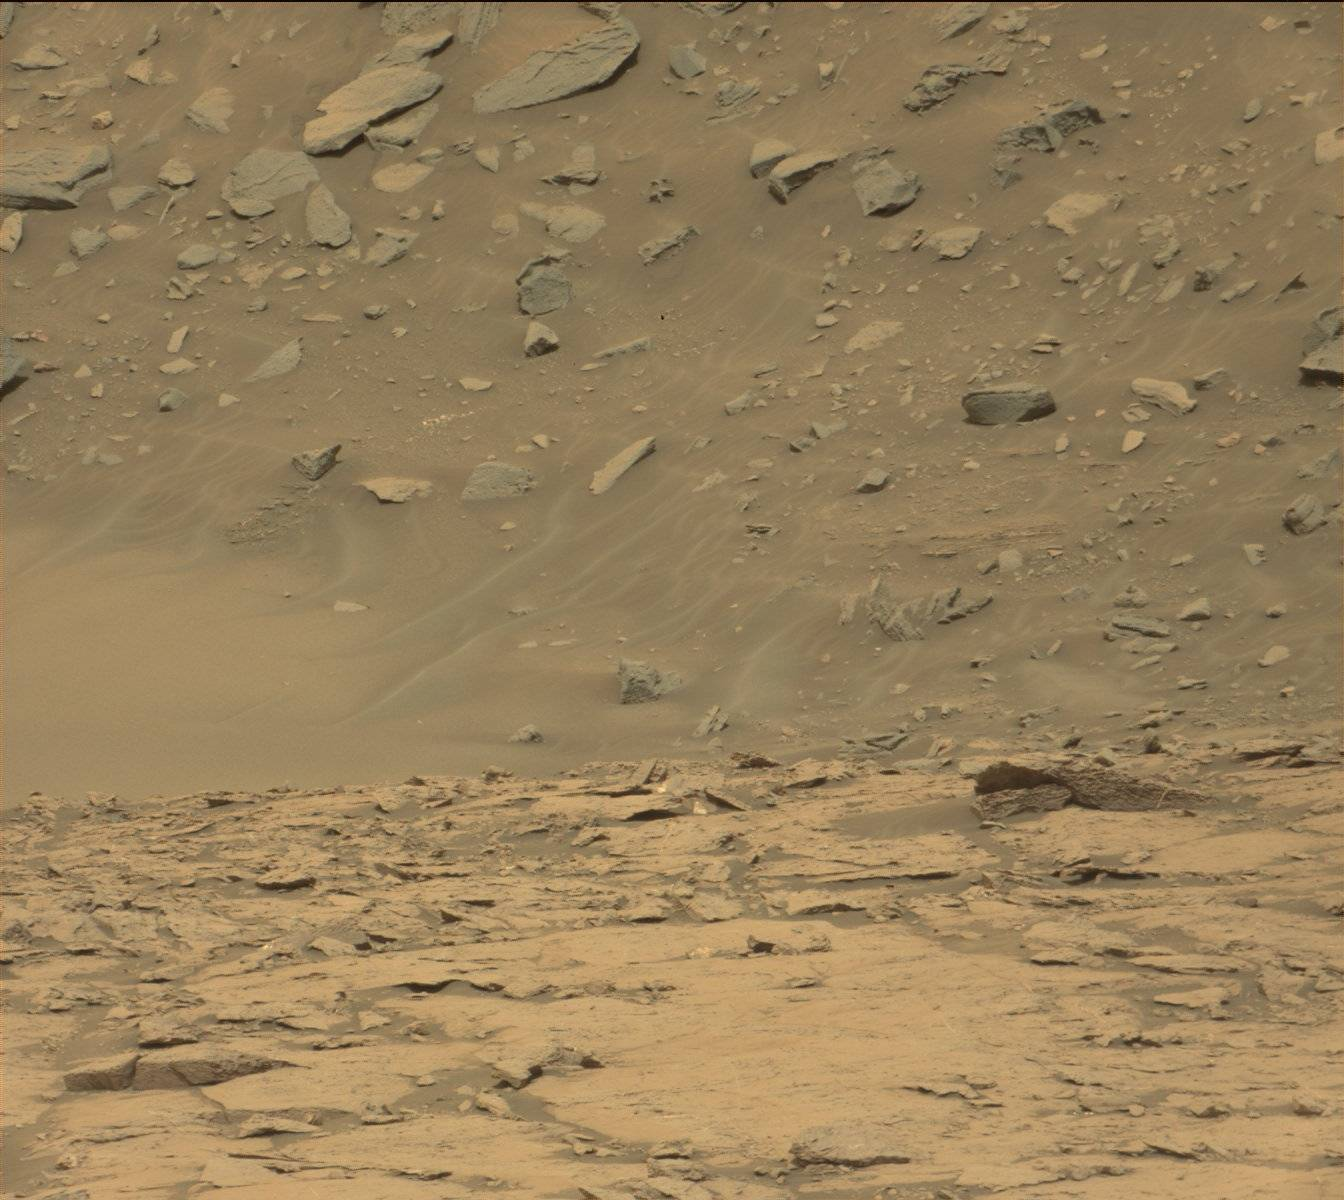 Mars rover curiosity image from MAST camera